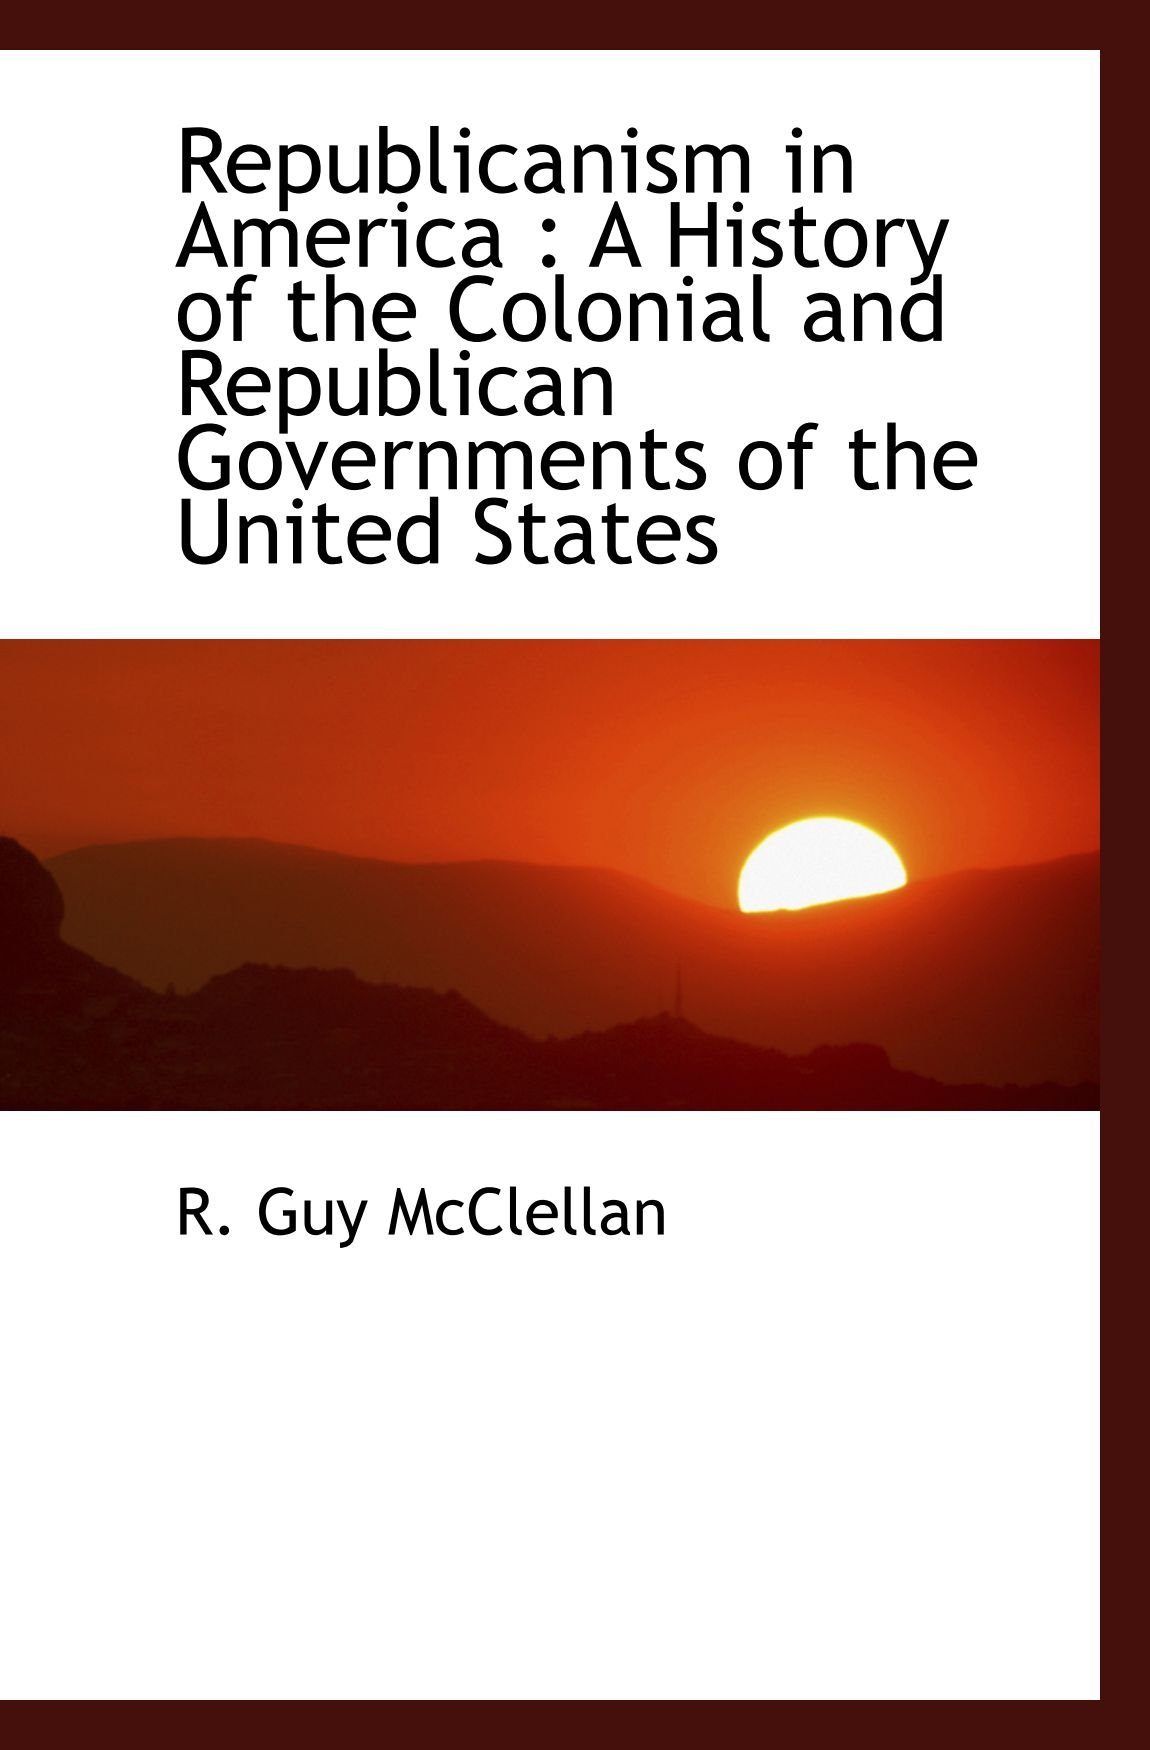 Download Republicanism in America : A History of the Colonial and Republican Governments of the United States PDF